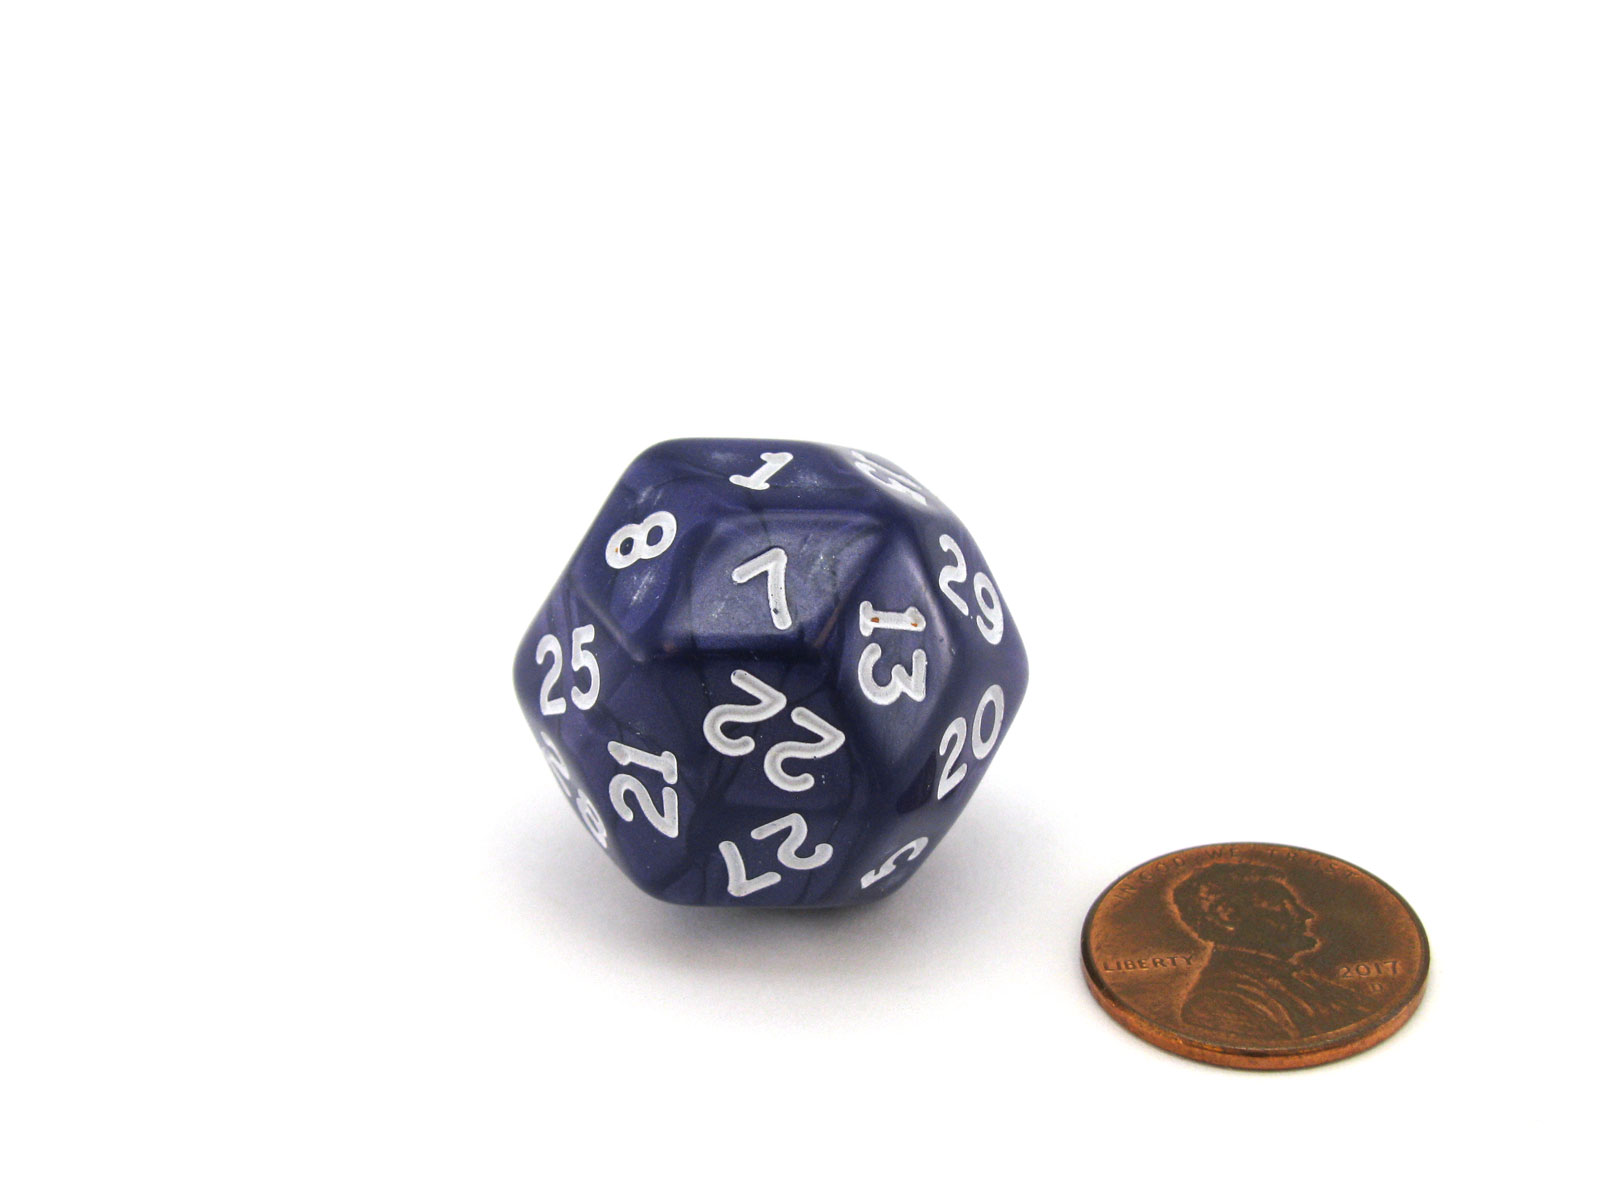 Pearlescent Triantakohedron D30 30 Sided 25mm Chessex Dice - Purple with White